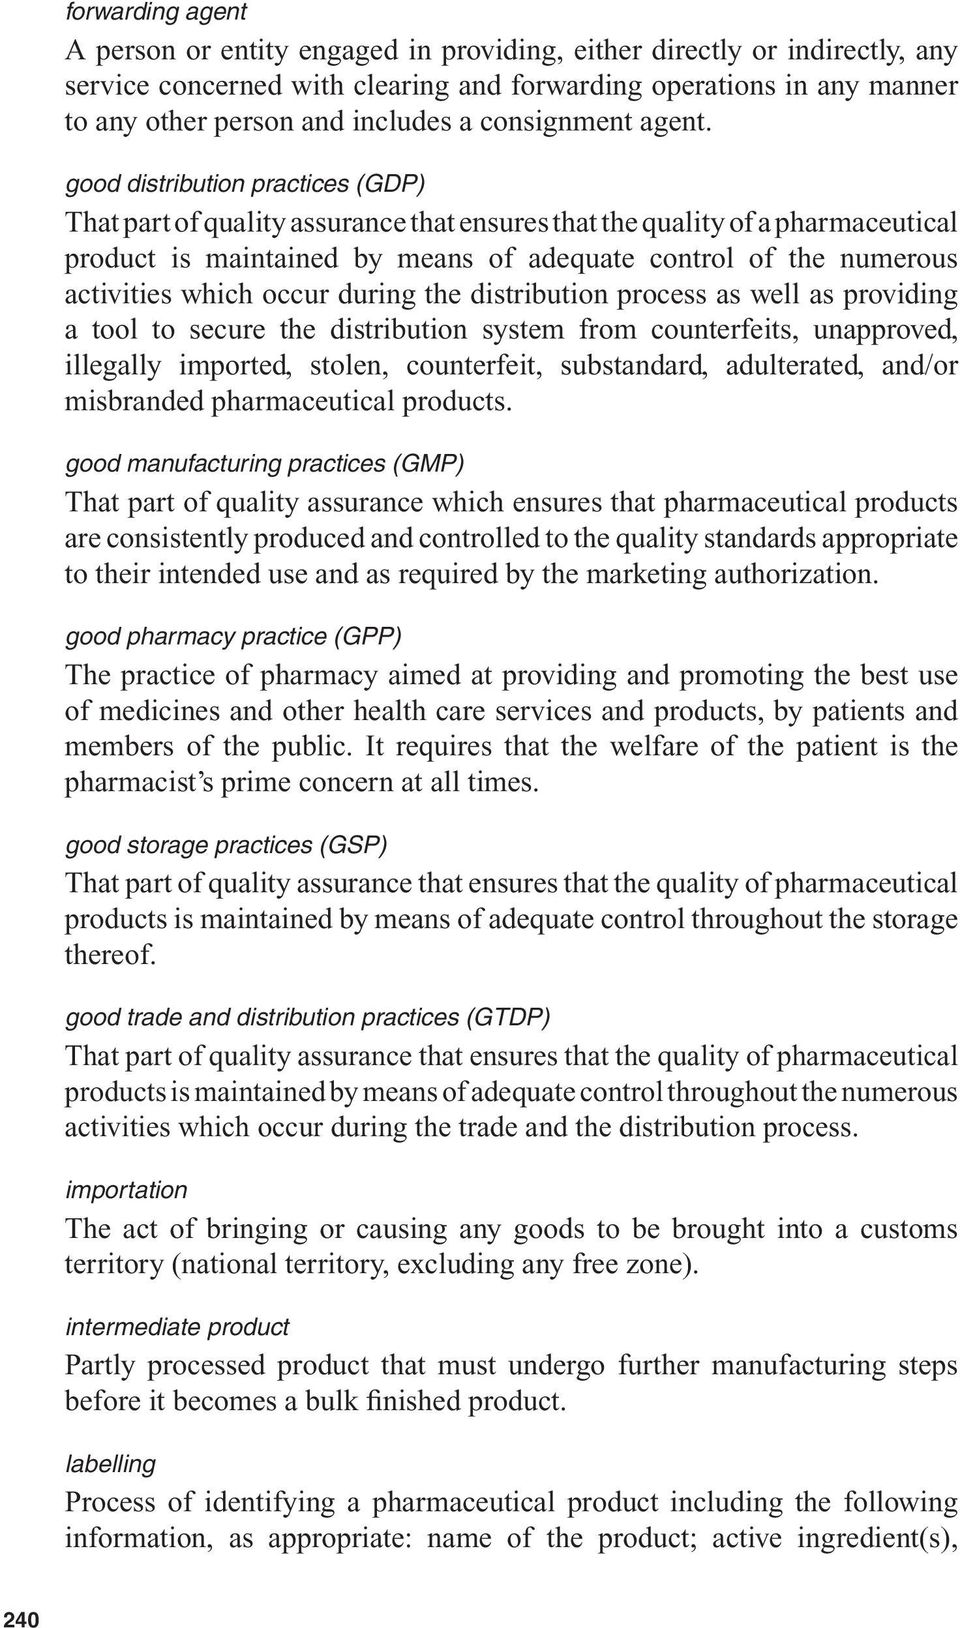 good distribution practices (GDP) That part of quality assurance that ensures that the quality of a pharmaceutical product is maintained by means of adequate control of the numerous activities which